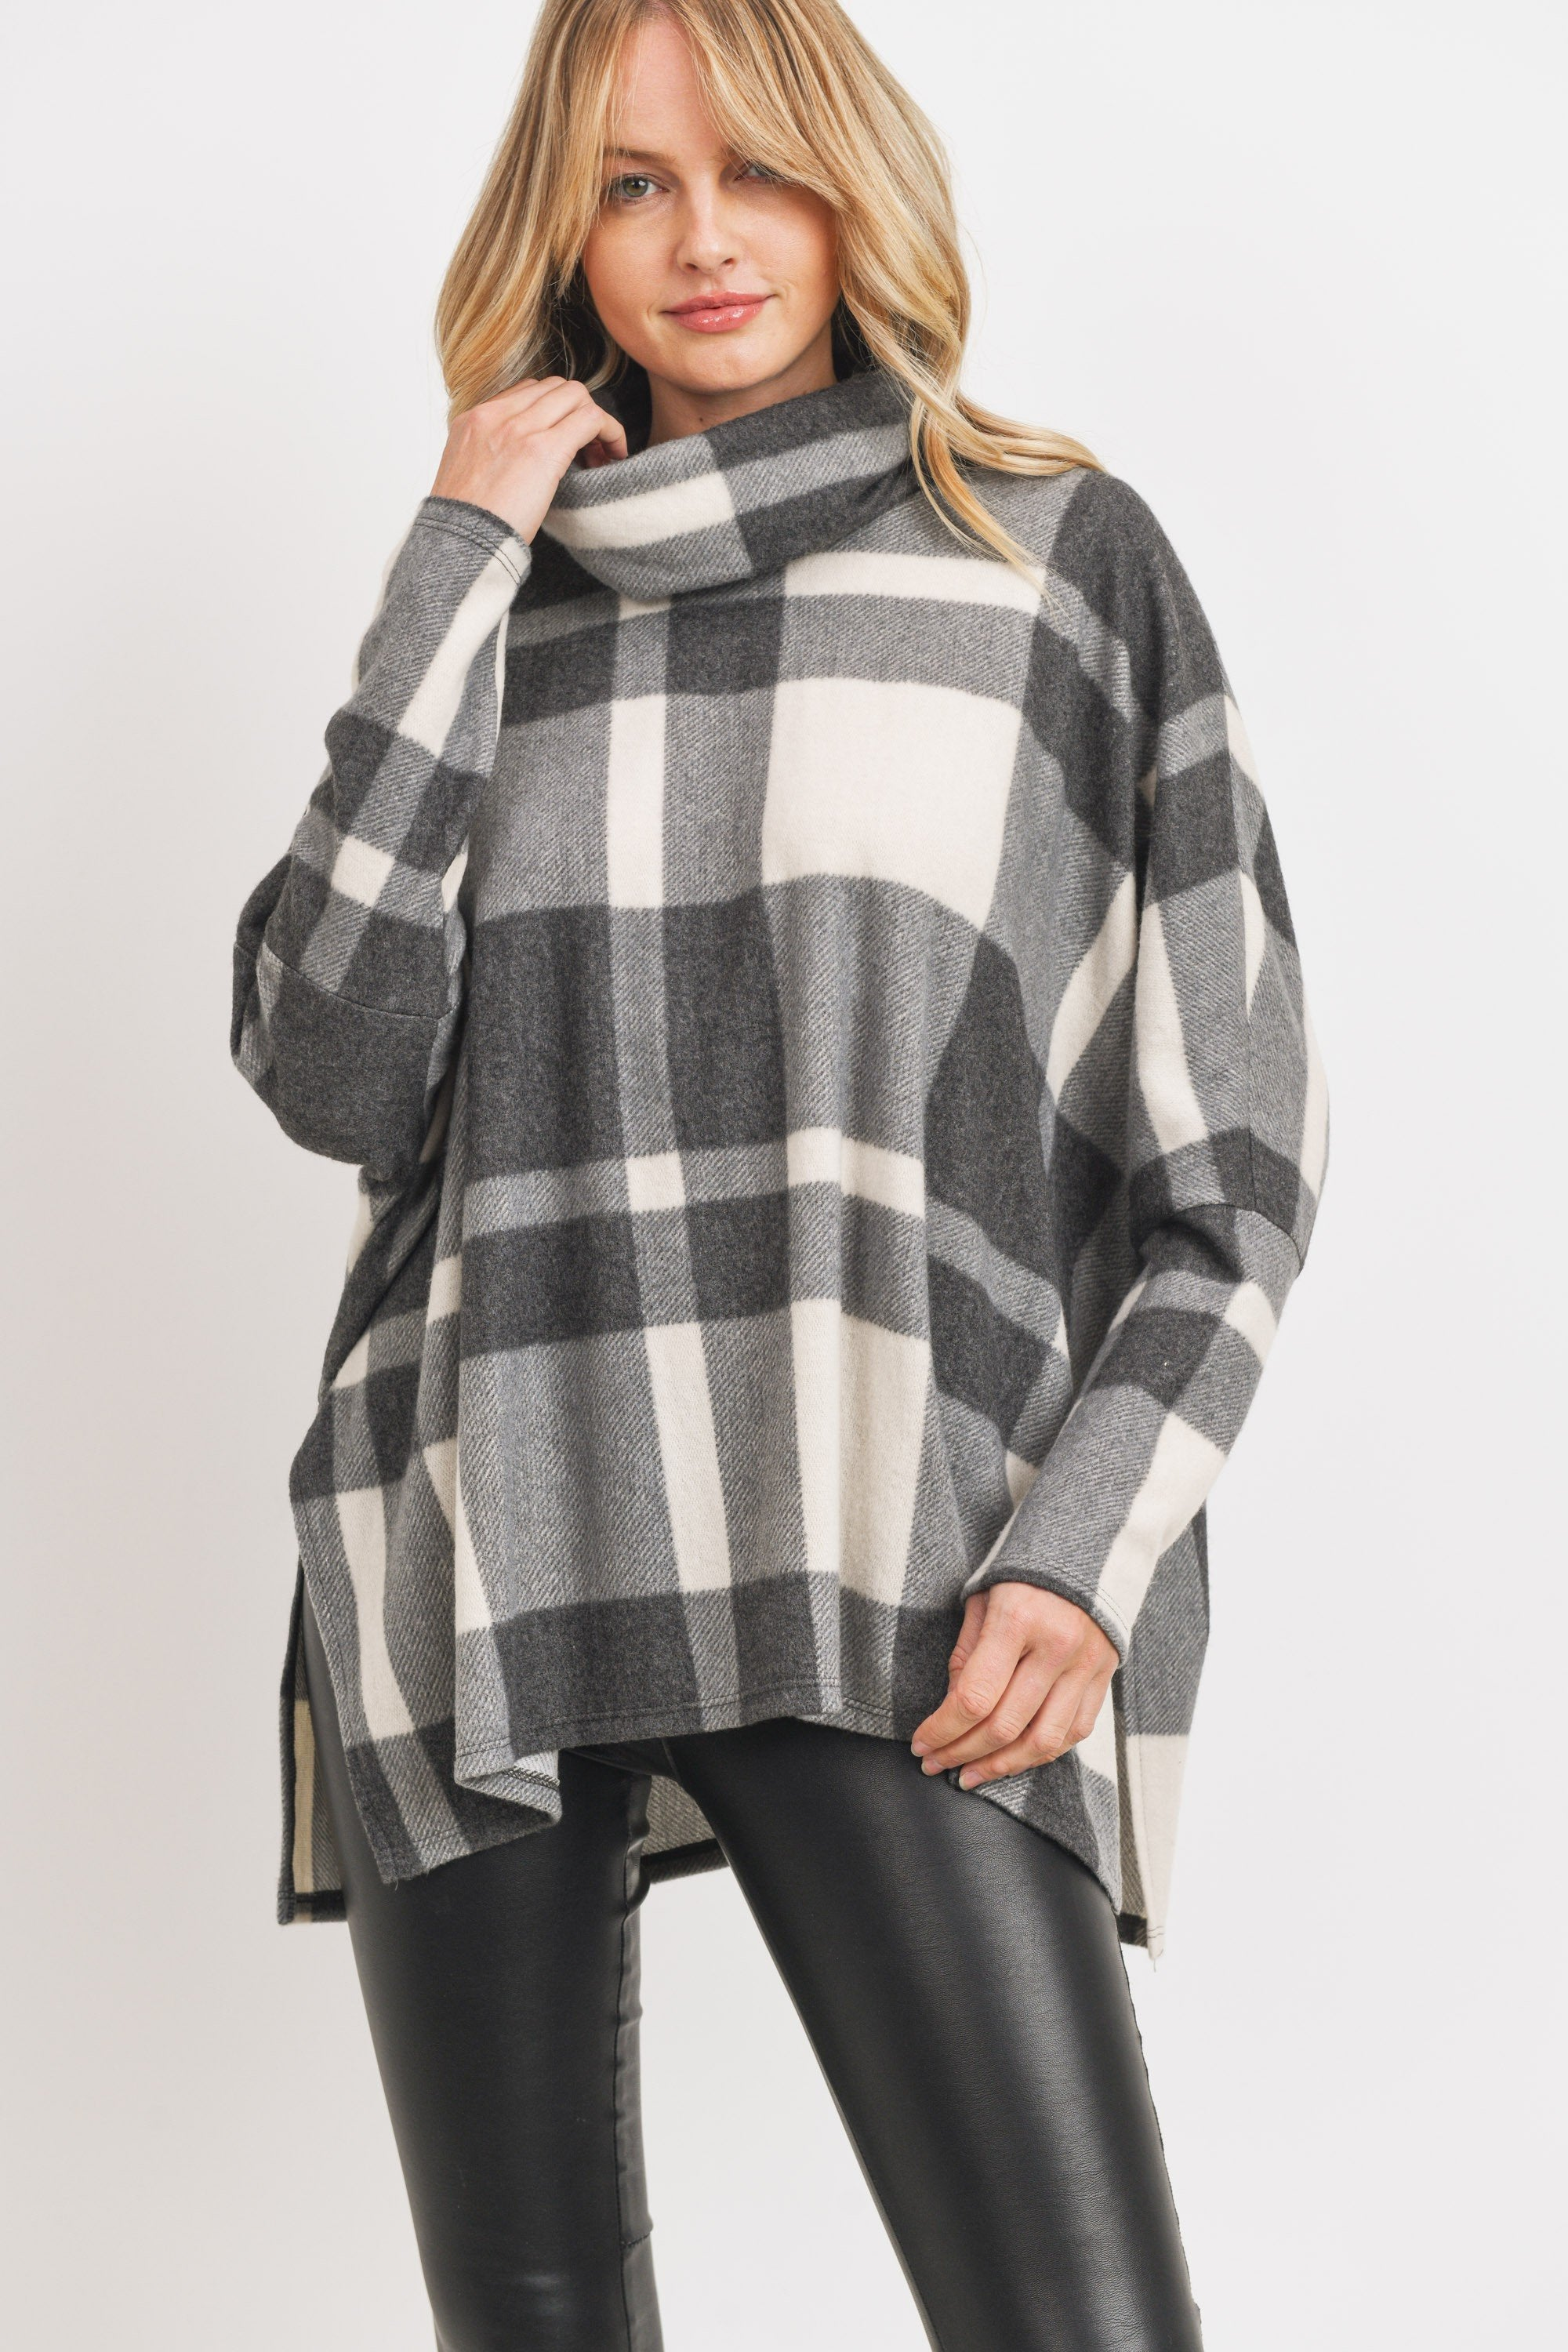 Dusty Sweater in Plaid